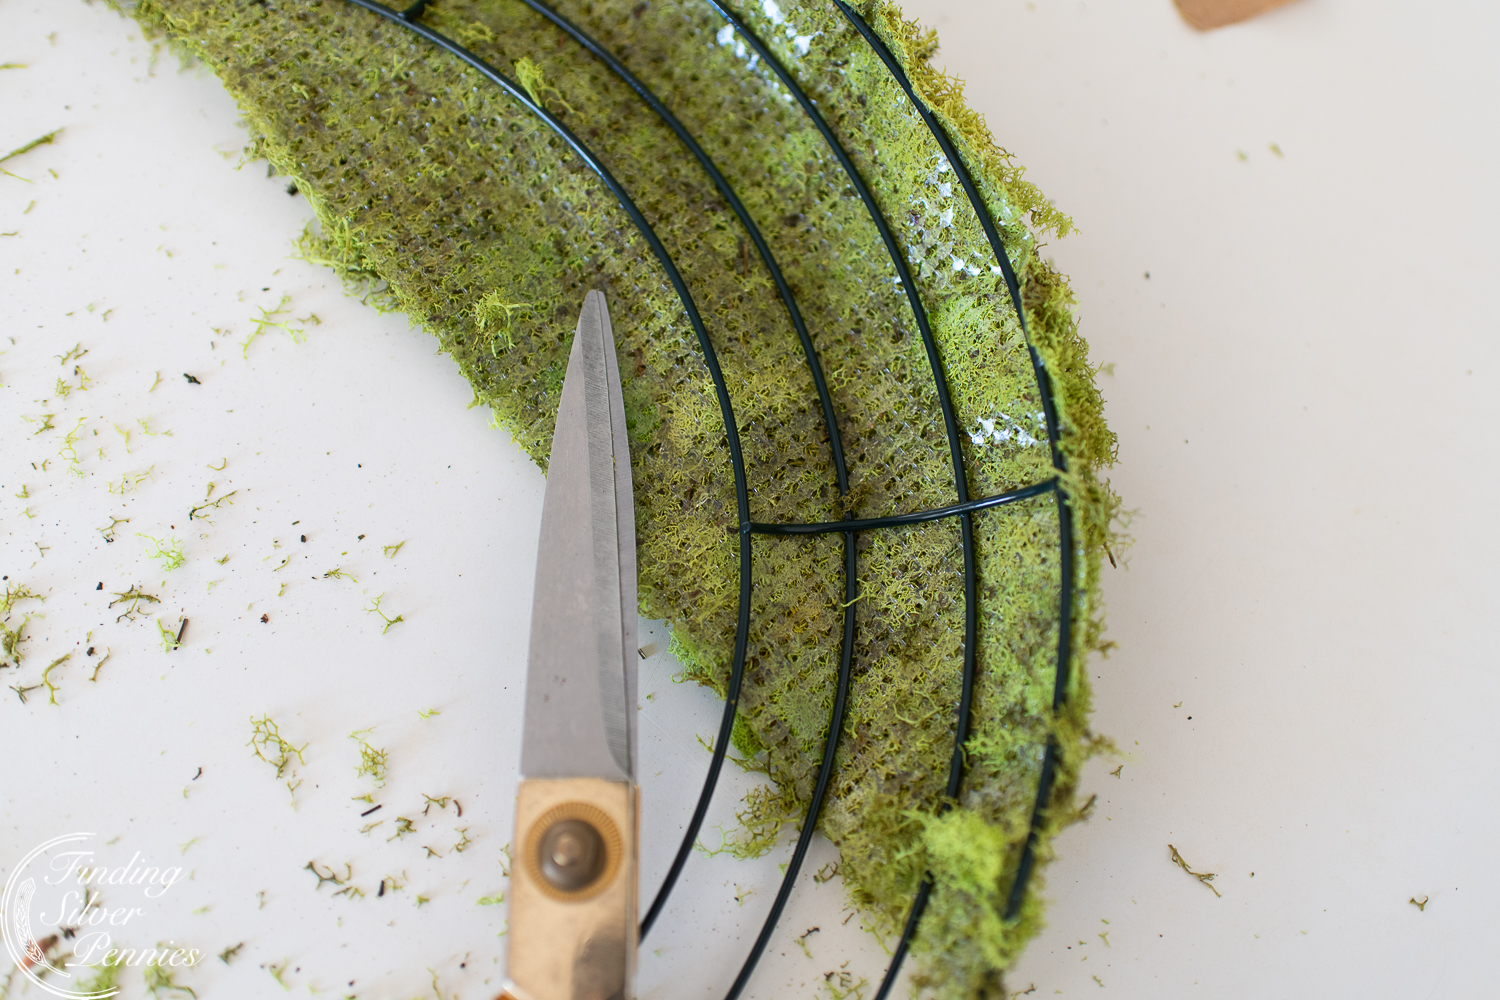 Quick and easy moss wreath #moss #crafts #DIYmosswreath #diymossnapkinrings #winterdecorating #hygge #cozyliving